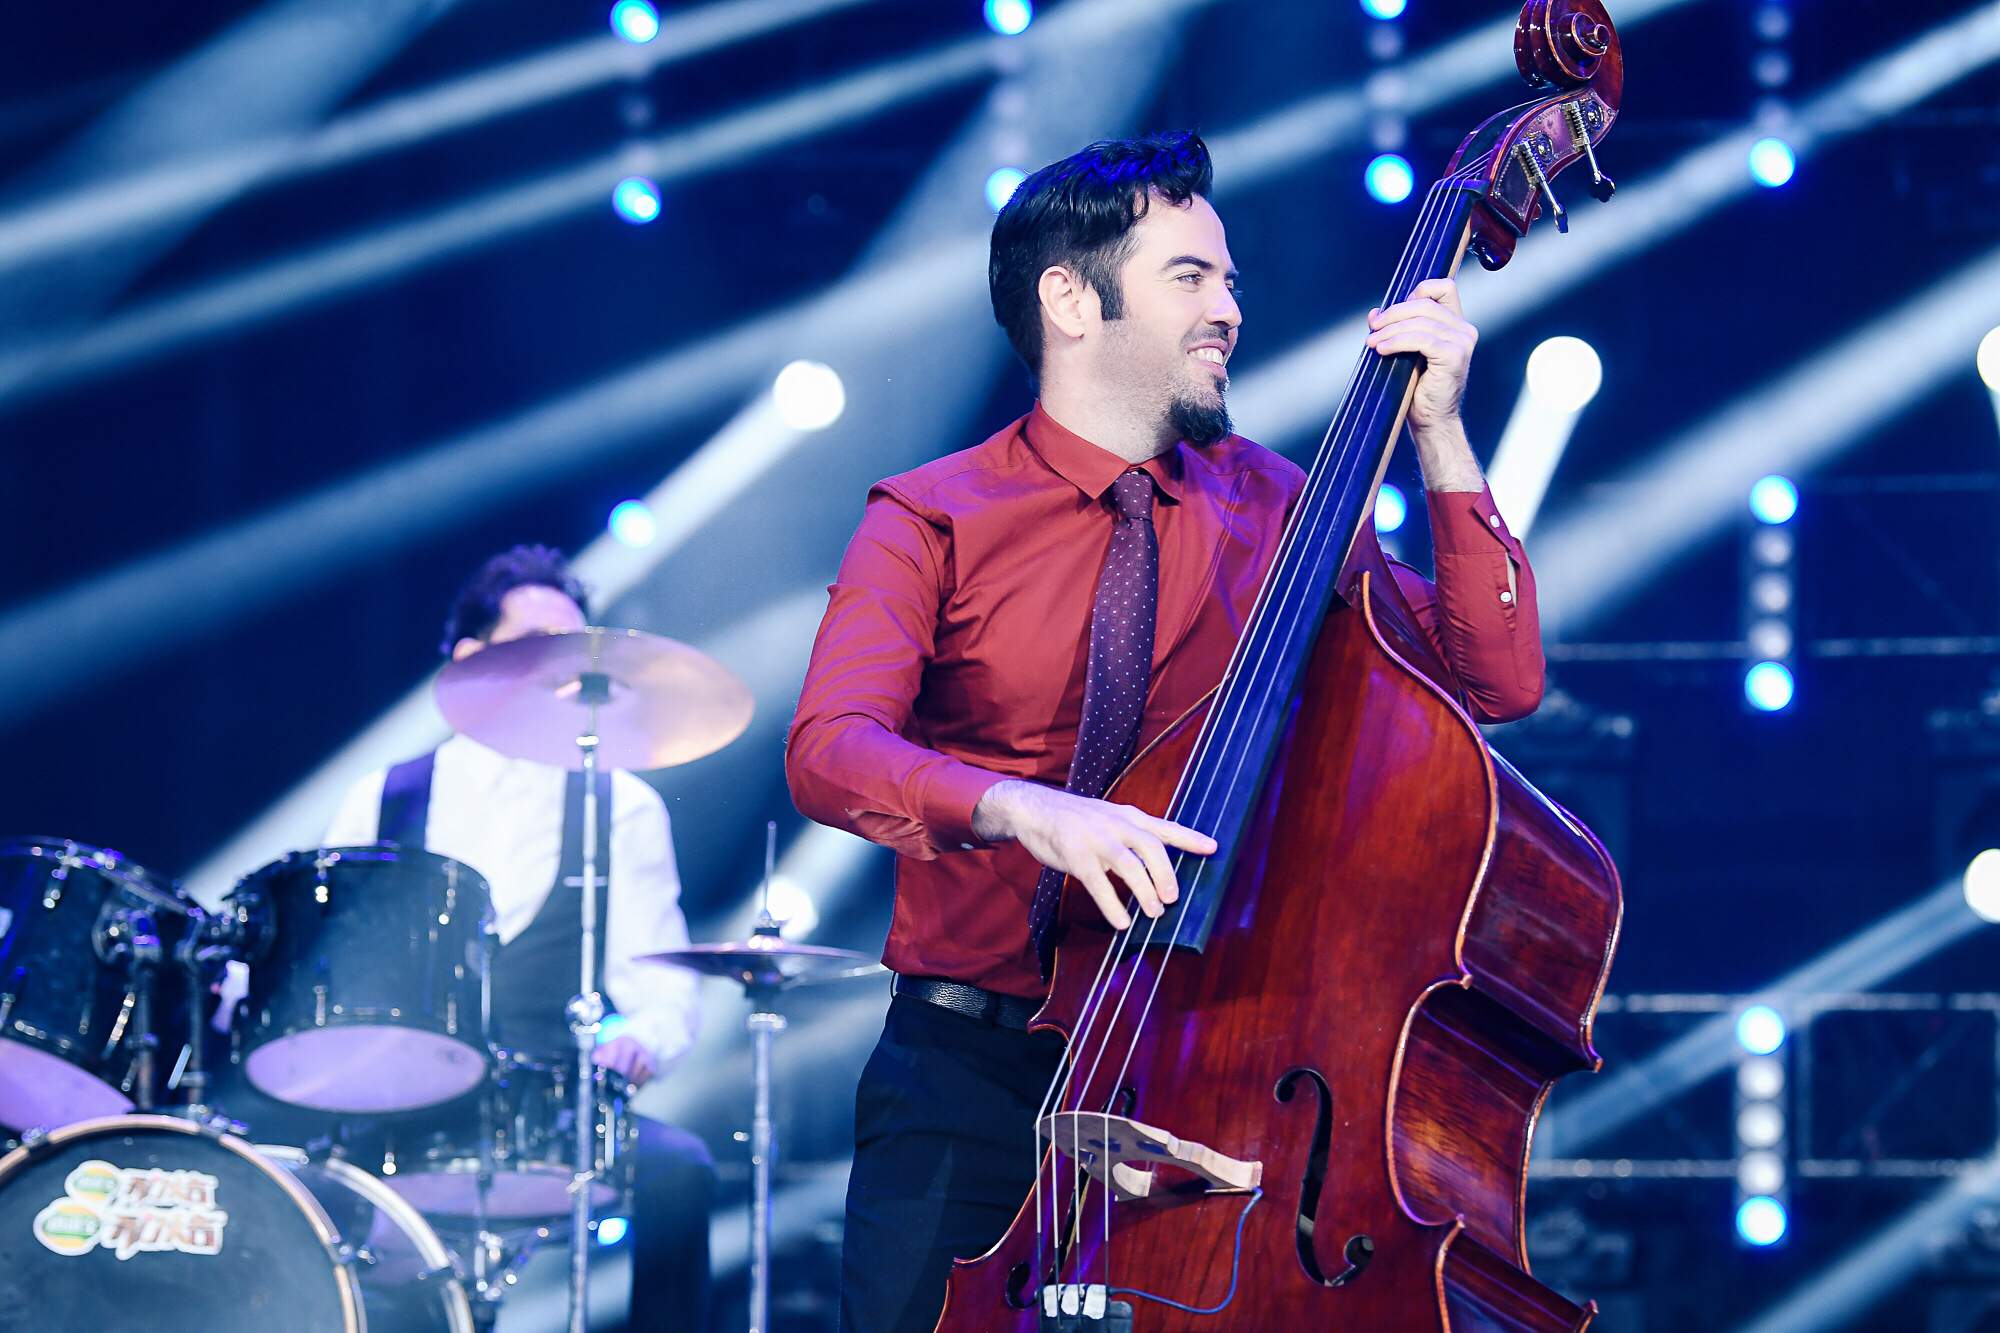 Andy Santana Bass player double bass musc jazz concert musica bajista contrabajo